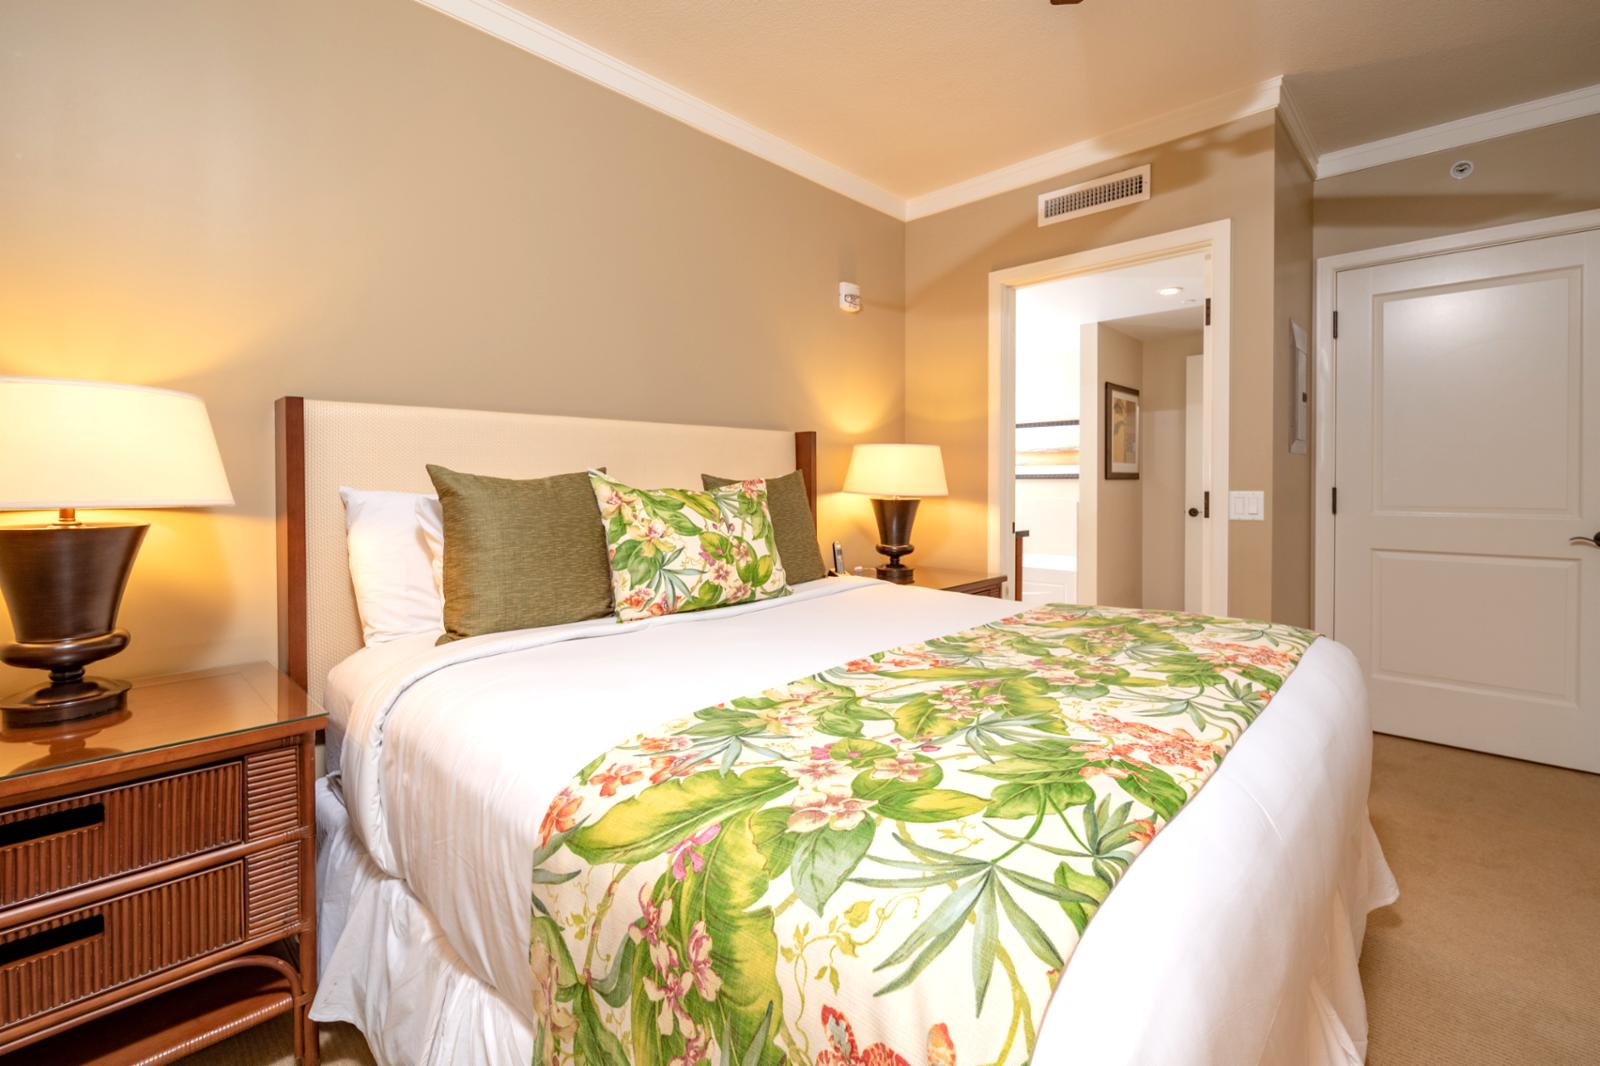 Guest suite, comes fully equipped with ceiling fan